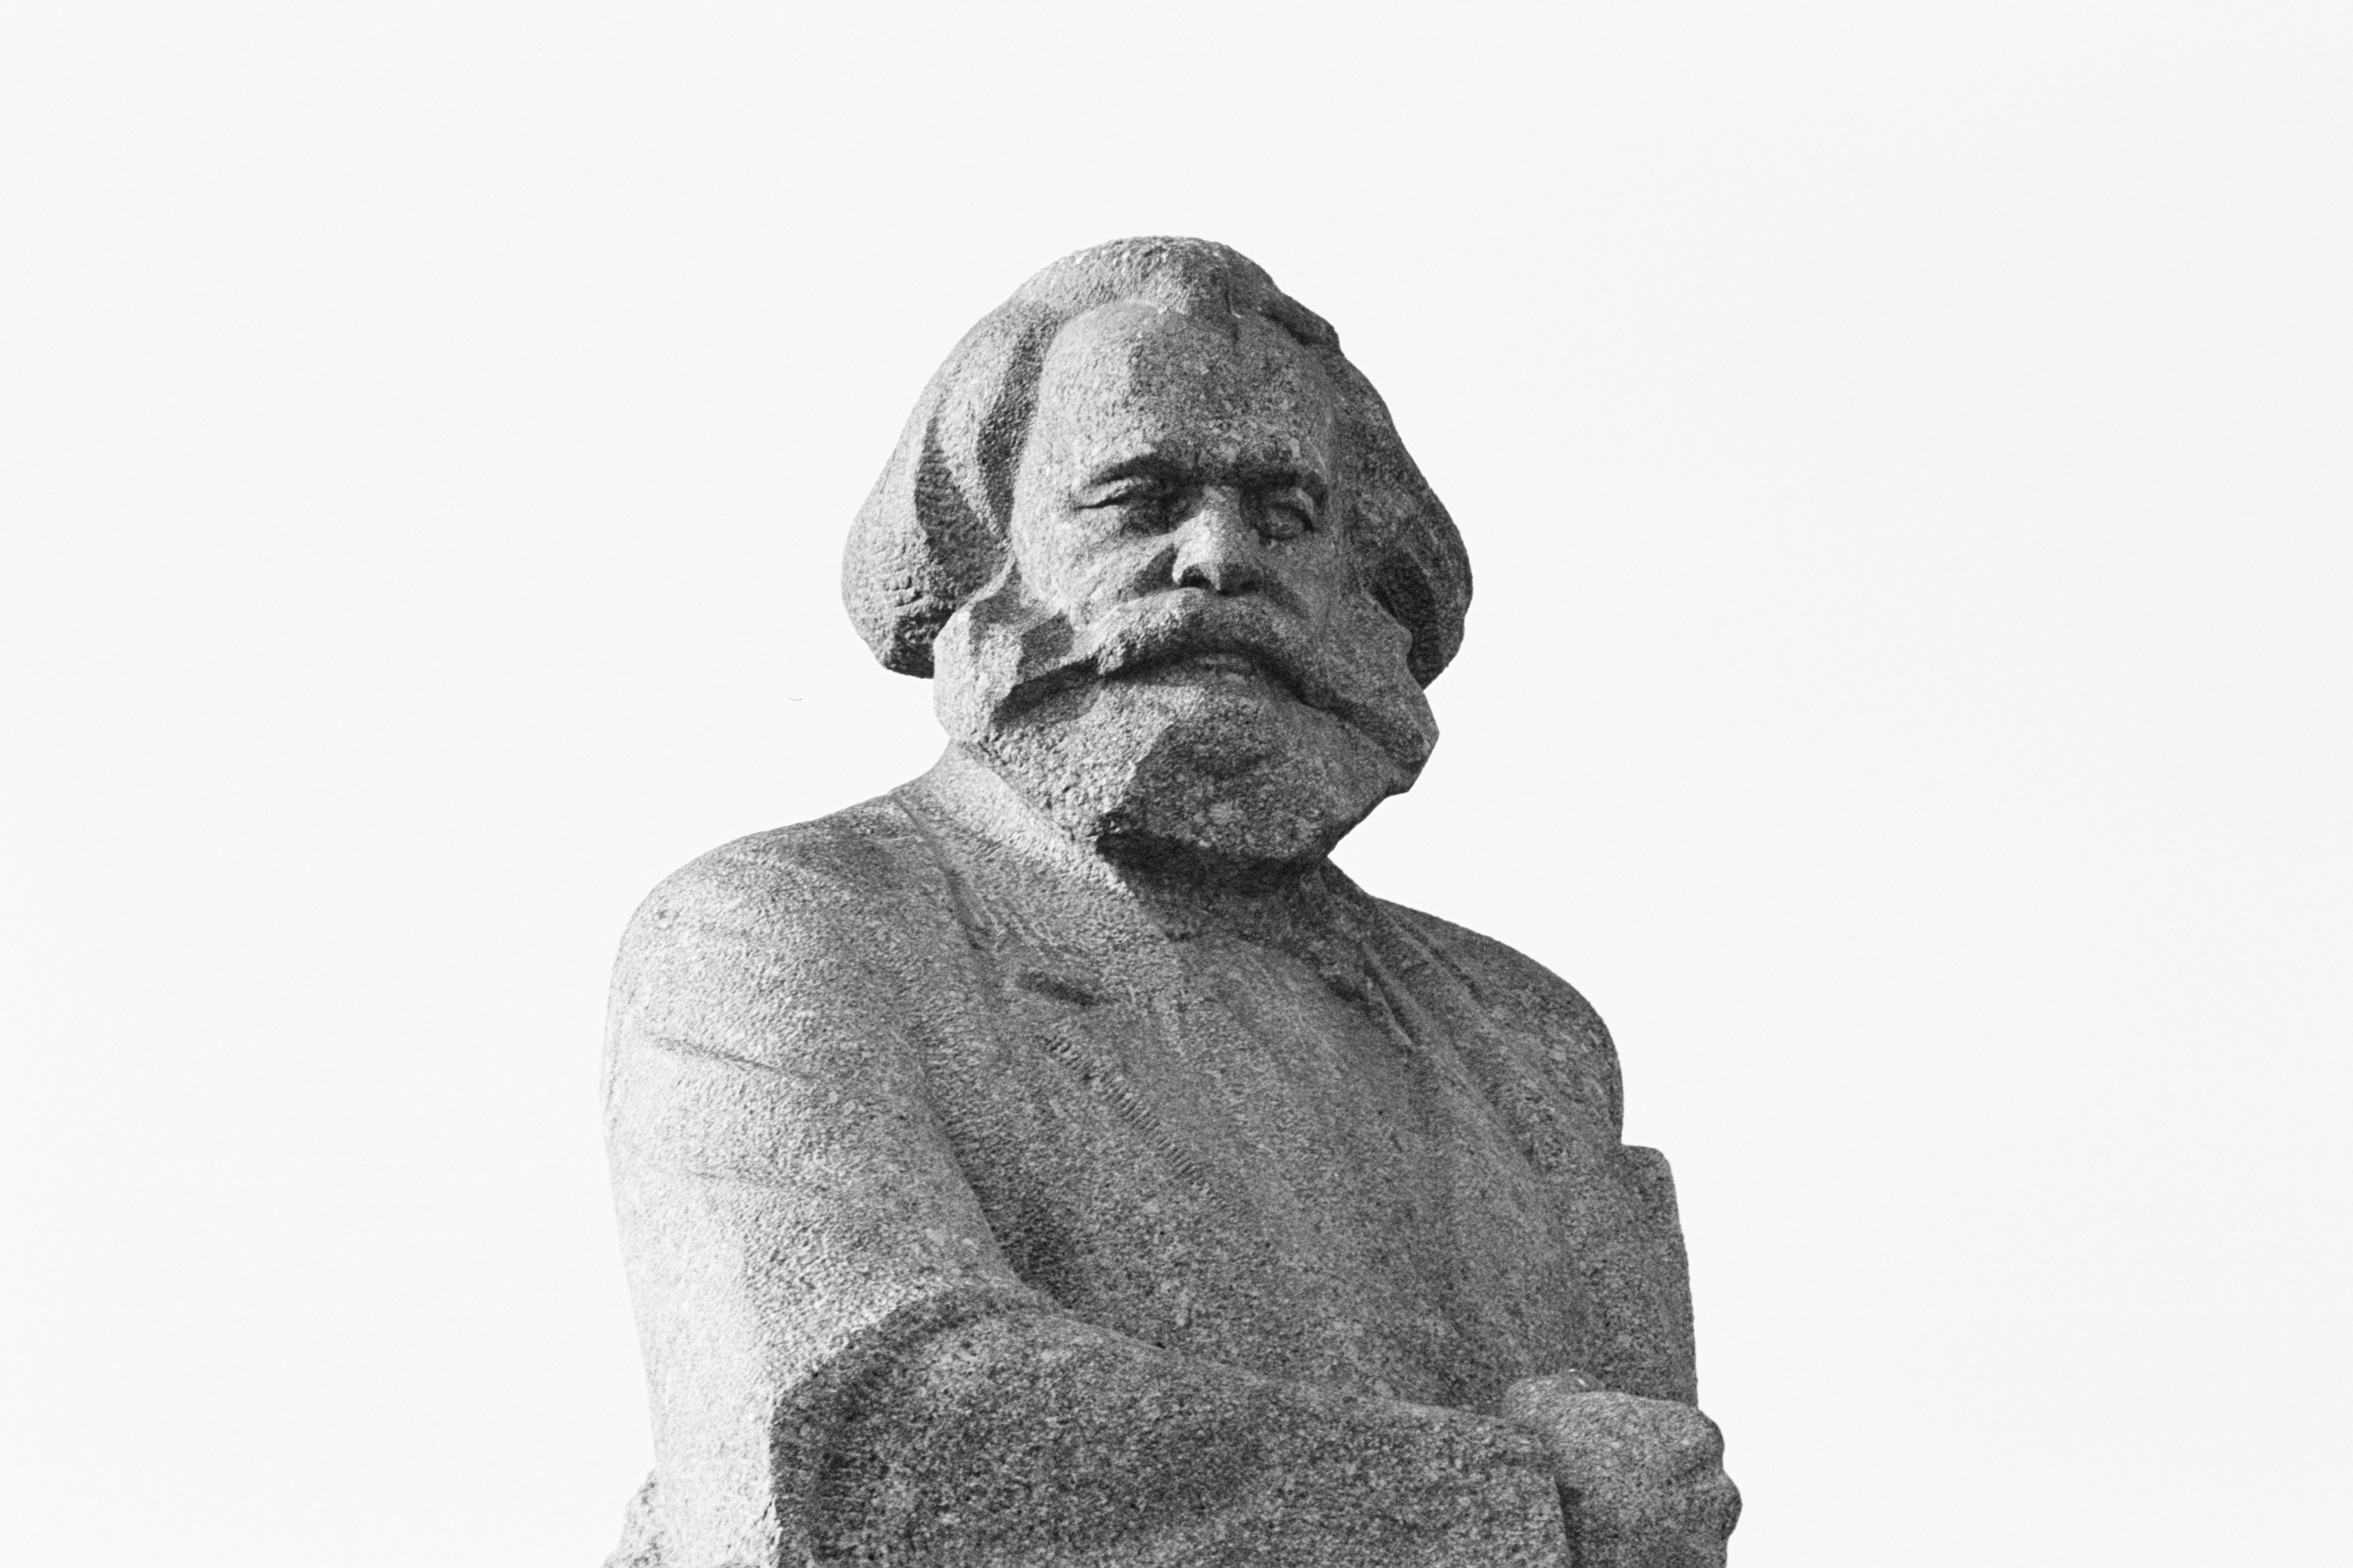 gray scale photo of man statue